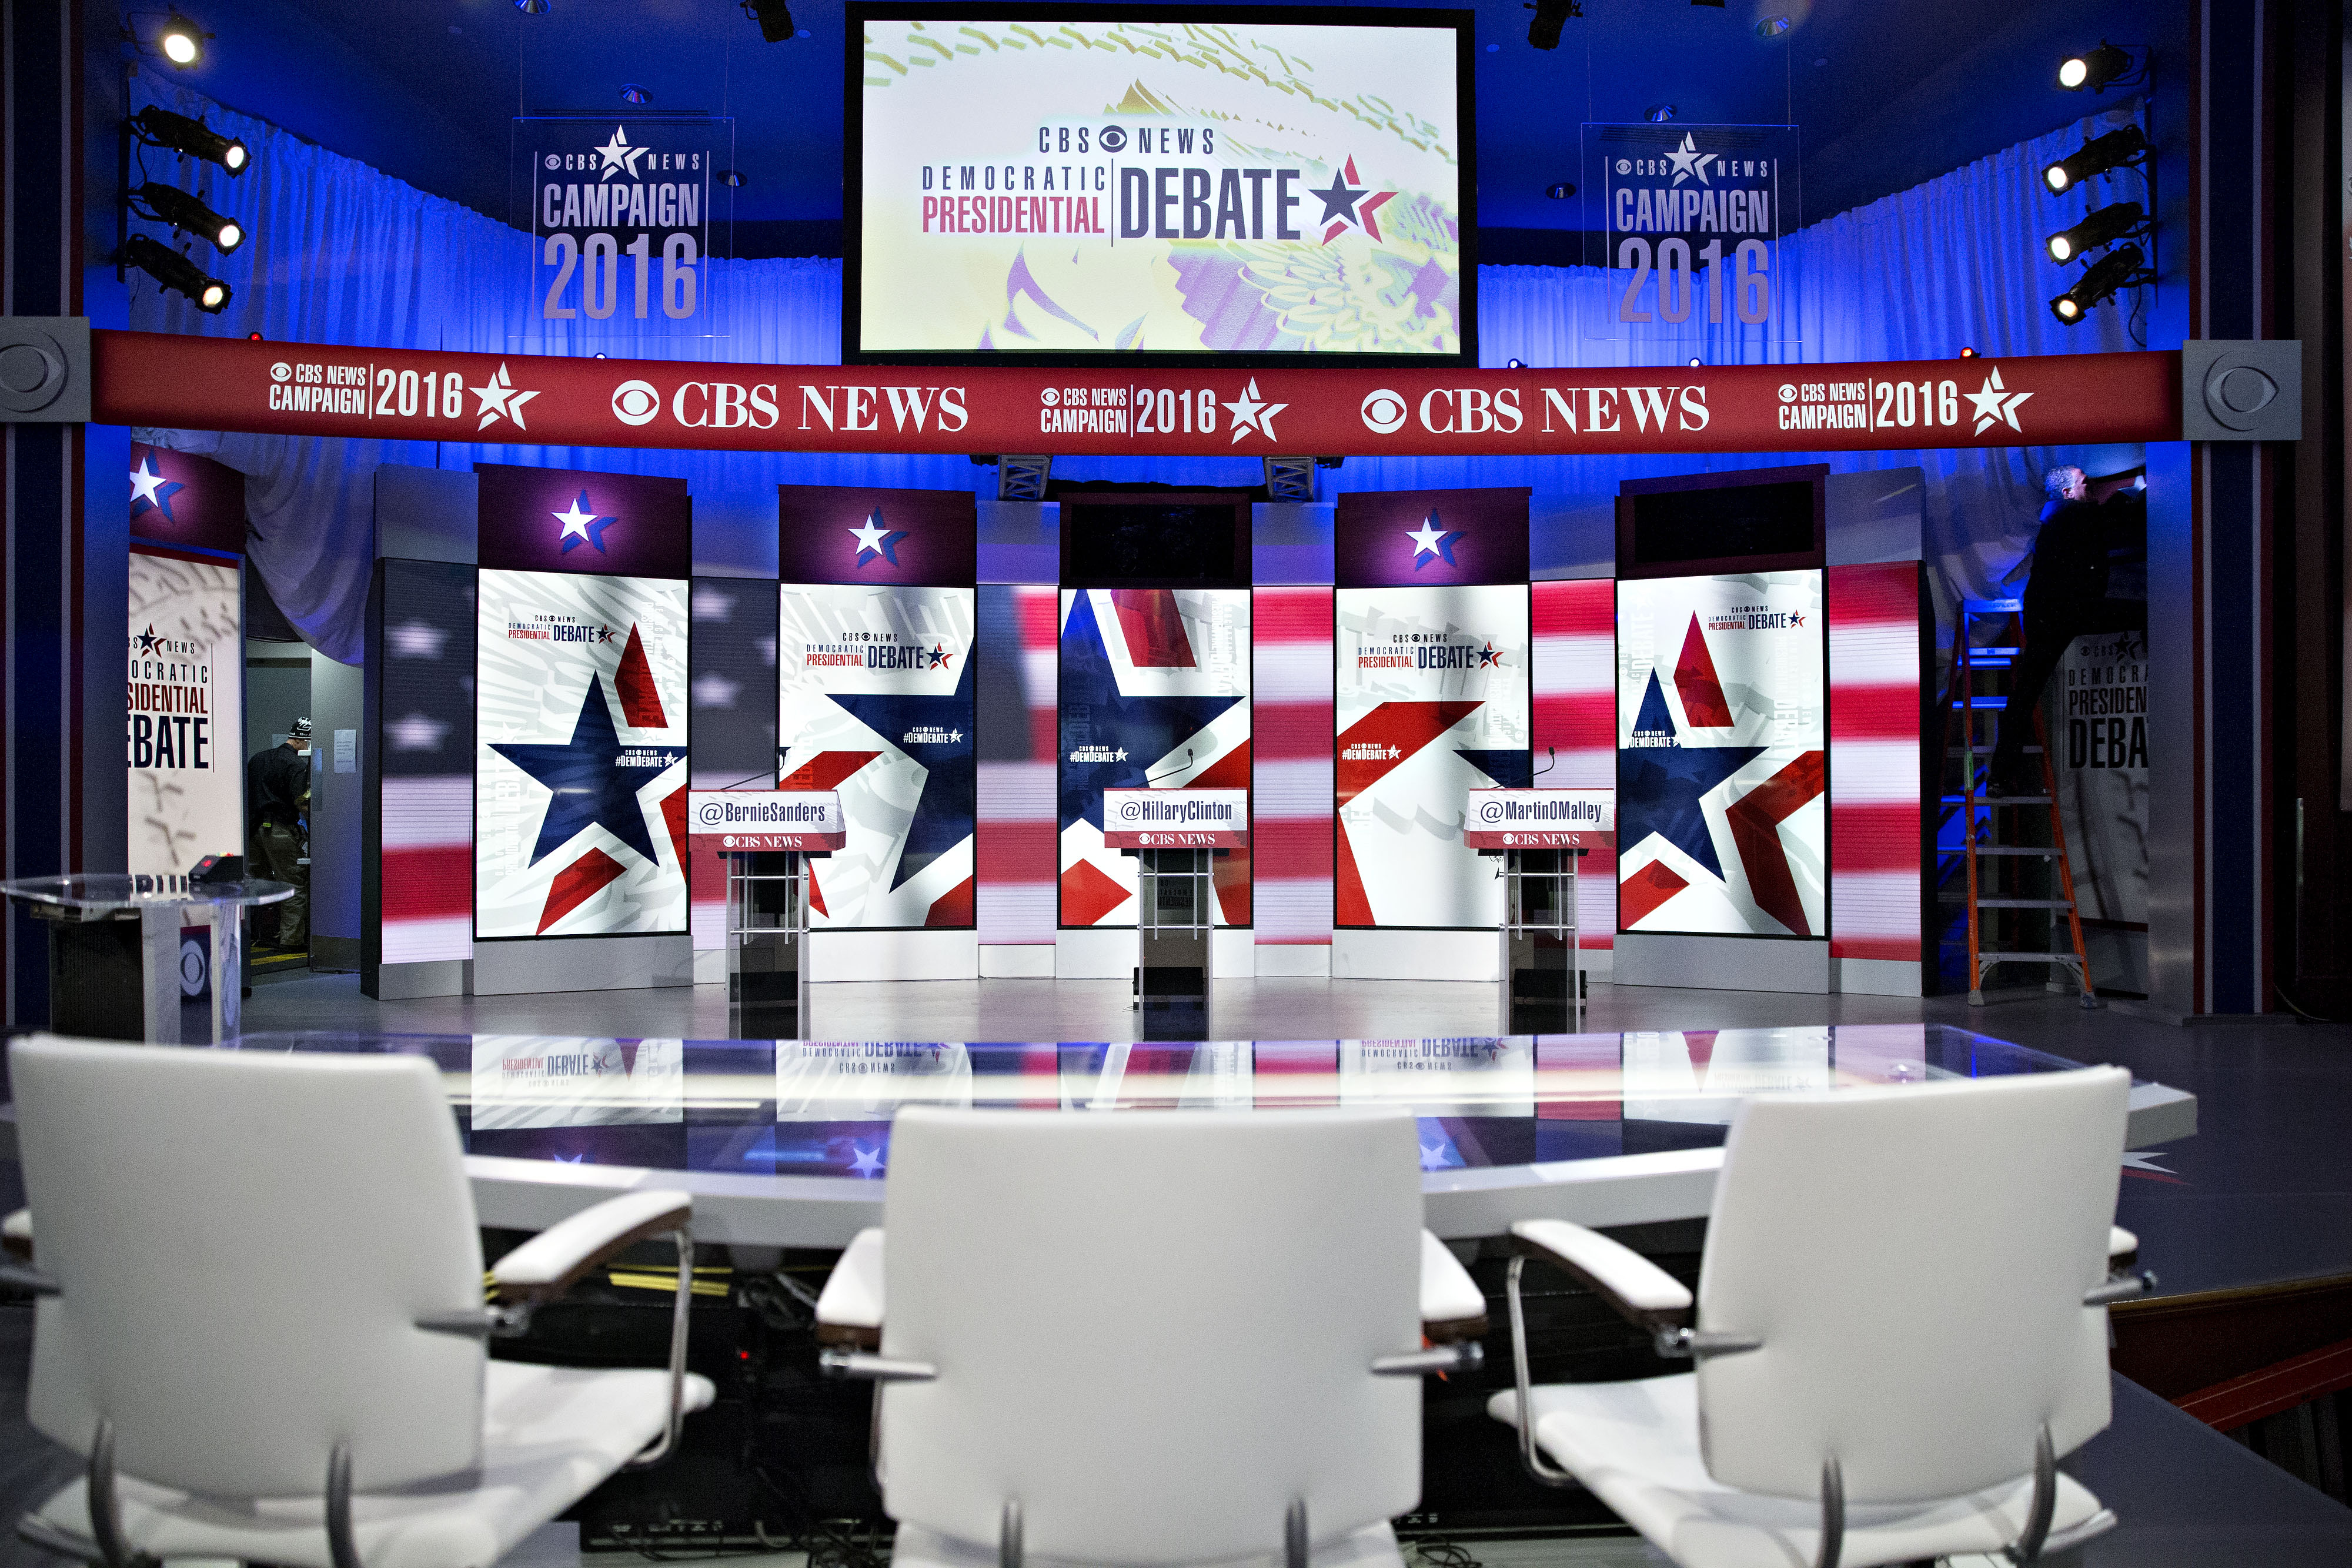 The Democratic presidential candidate debate venue at Drake University in Des Moines, Iowa, on Saturday, Nov. 14, 2015.